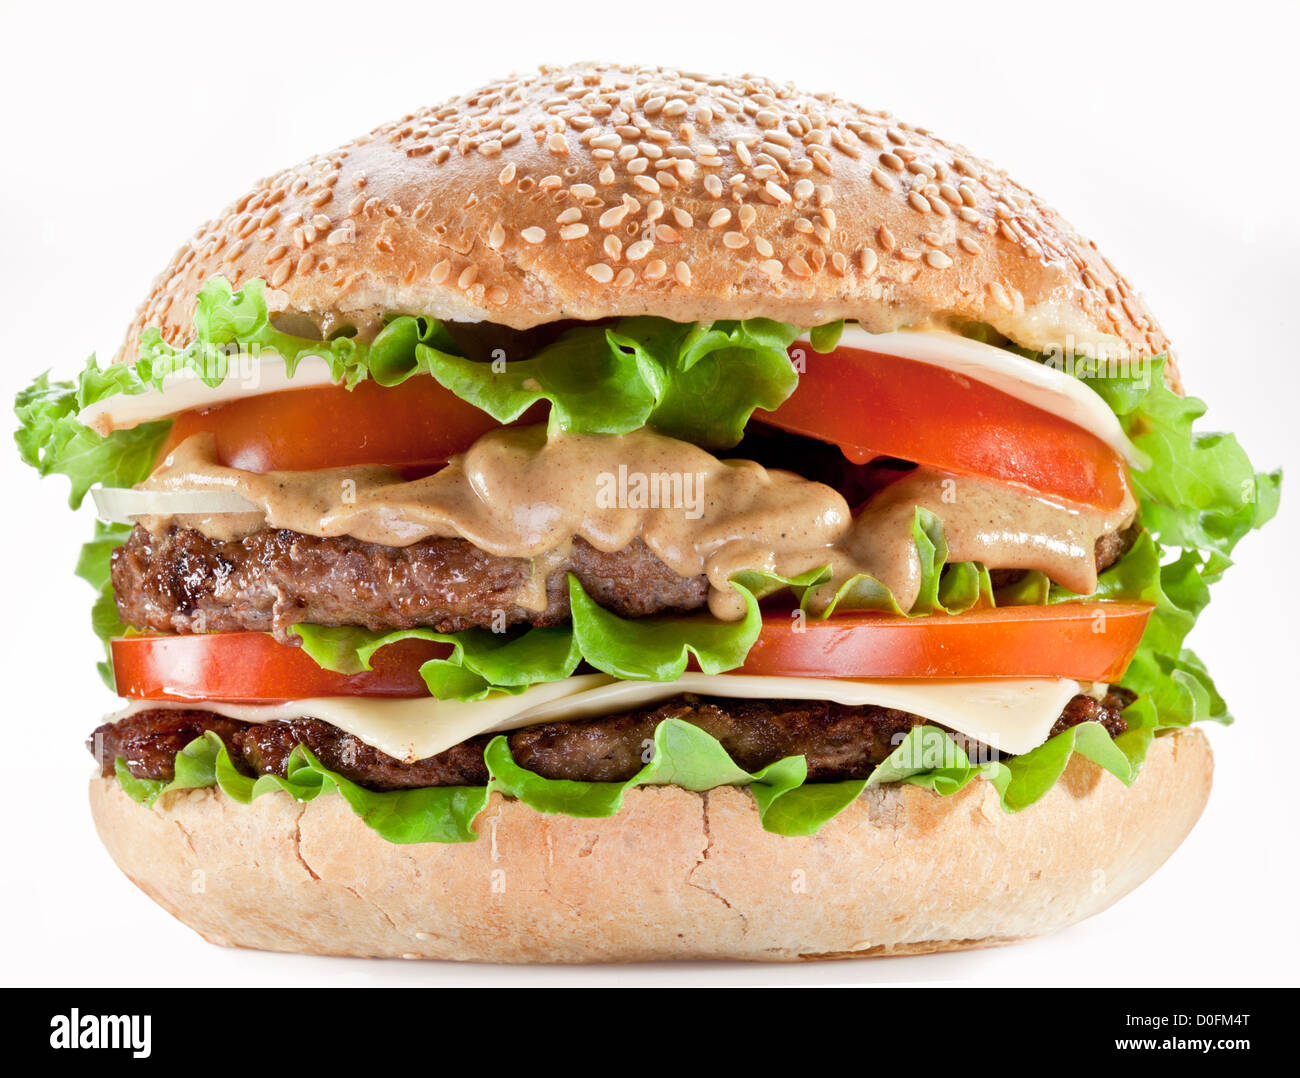 Tasty hamburger on white background. - Stock Image